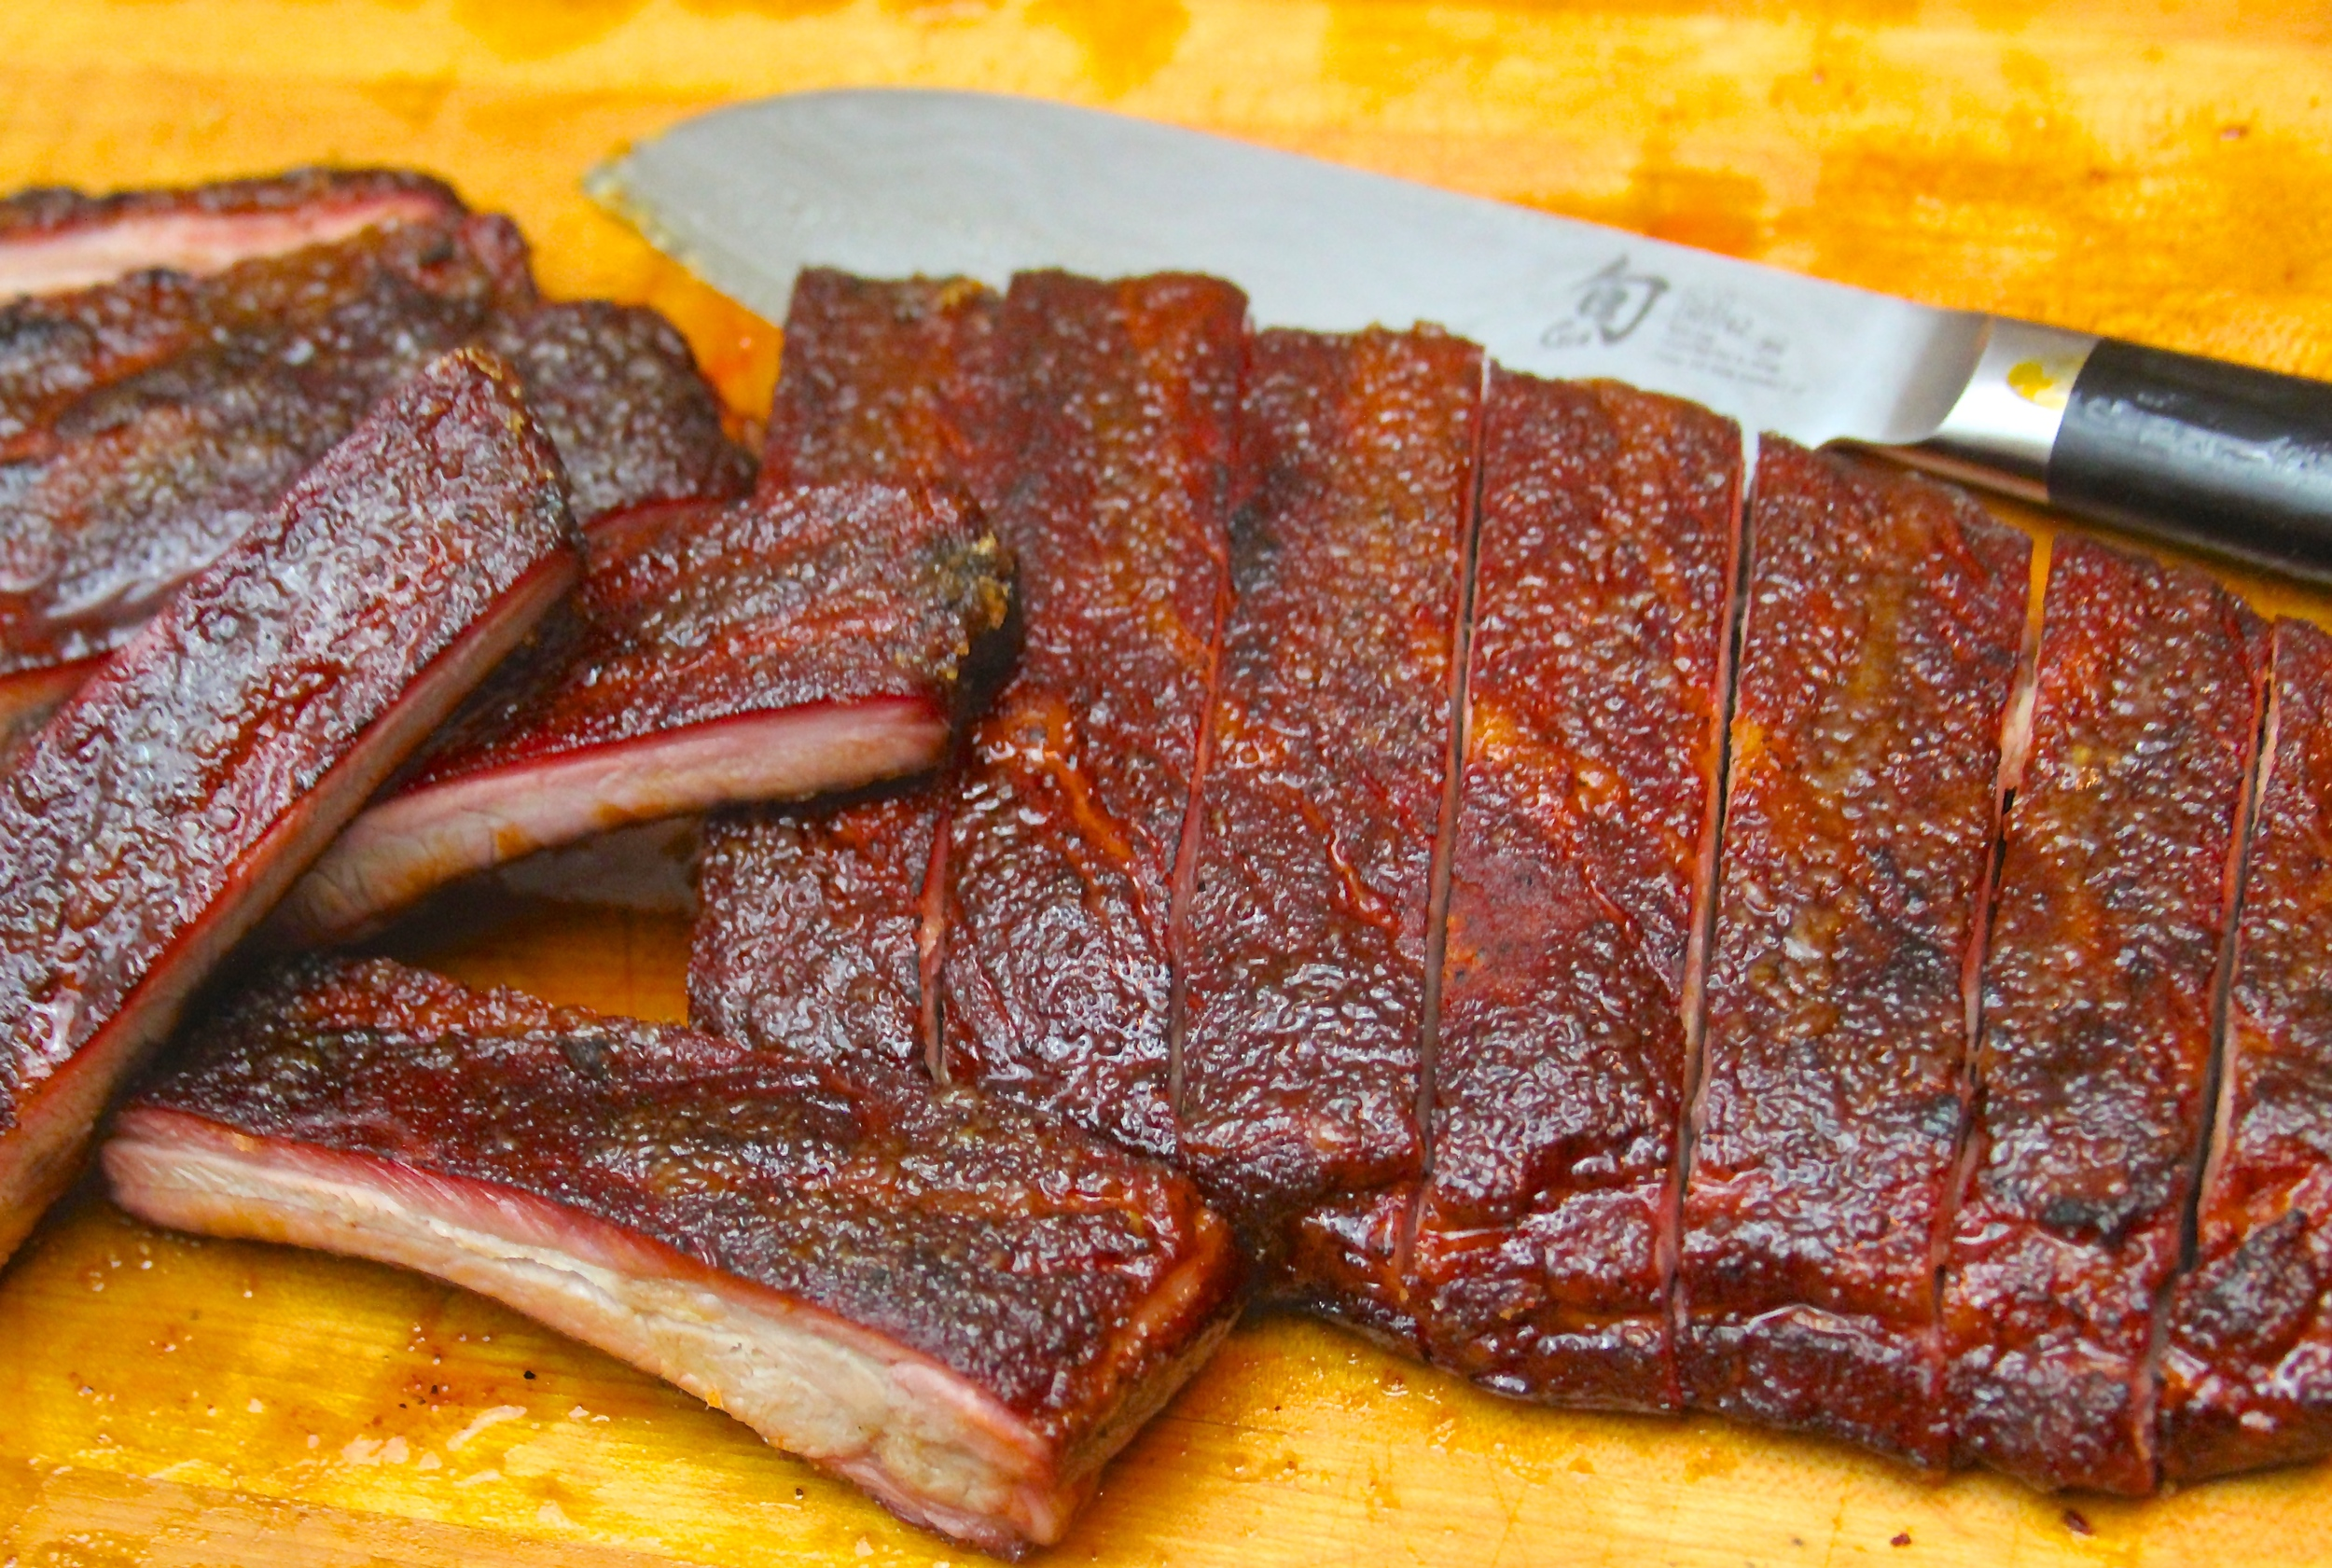 Smoked Candied RIbs (aka Bruleed Ribs)